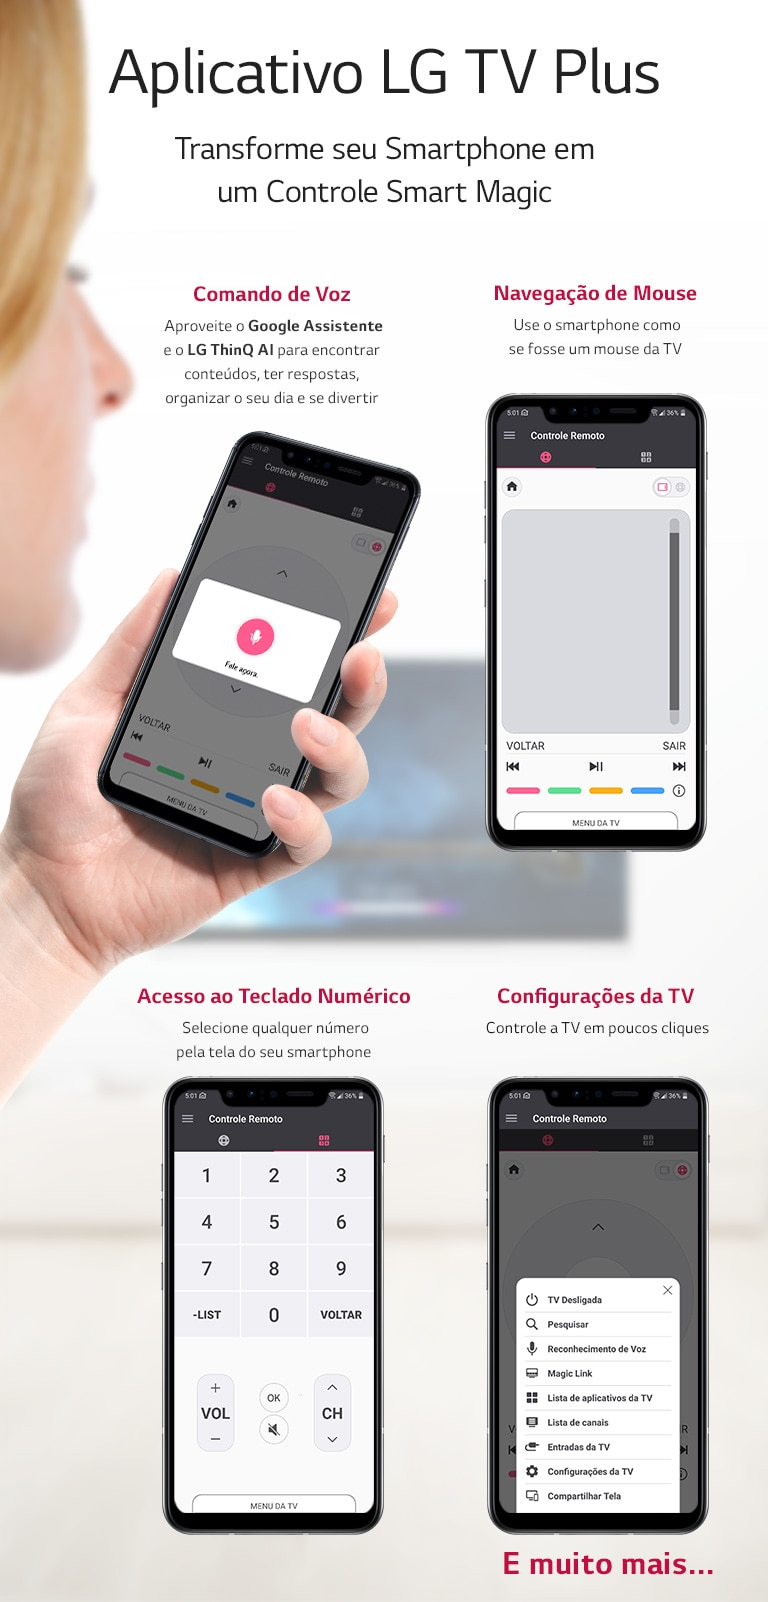 Feature-Card-App-LG-TV-Plus-Mobilie2